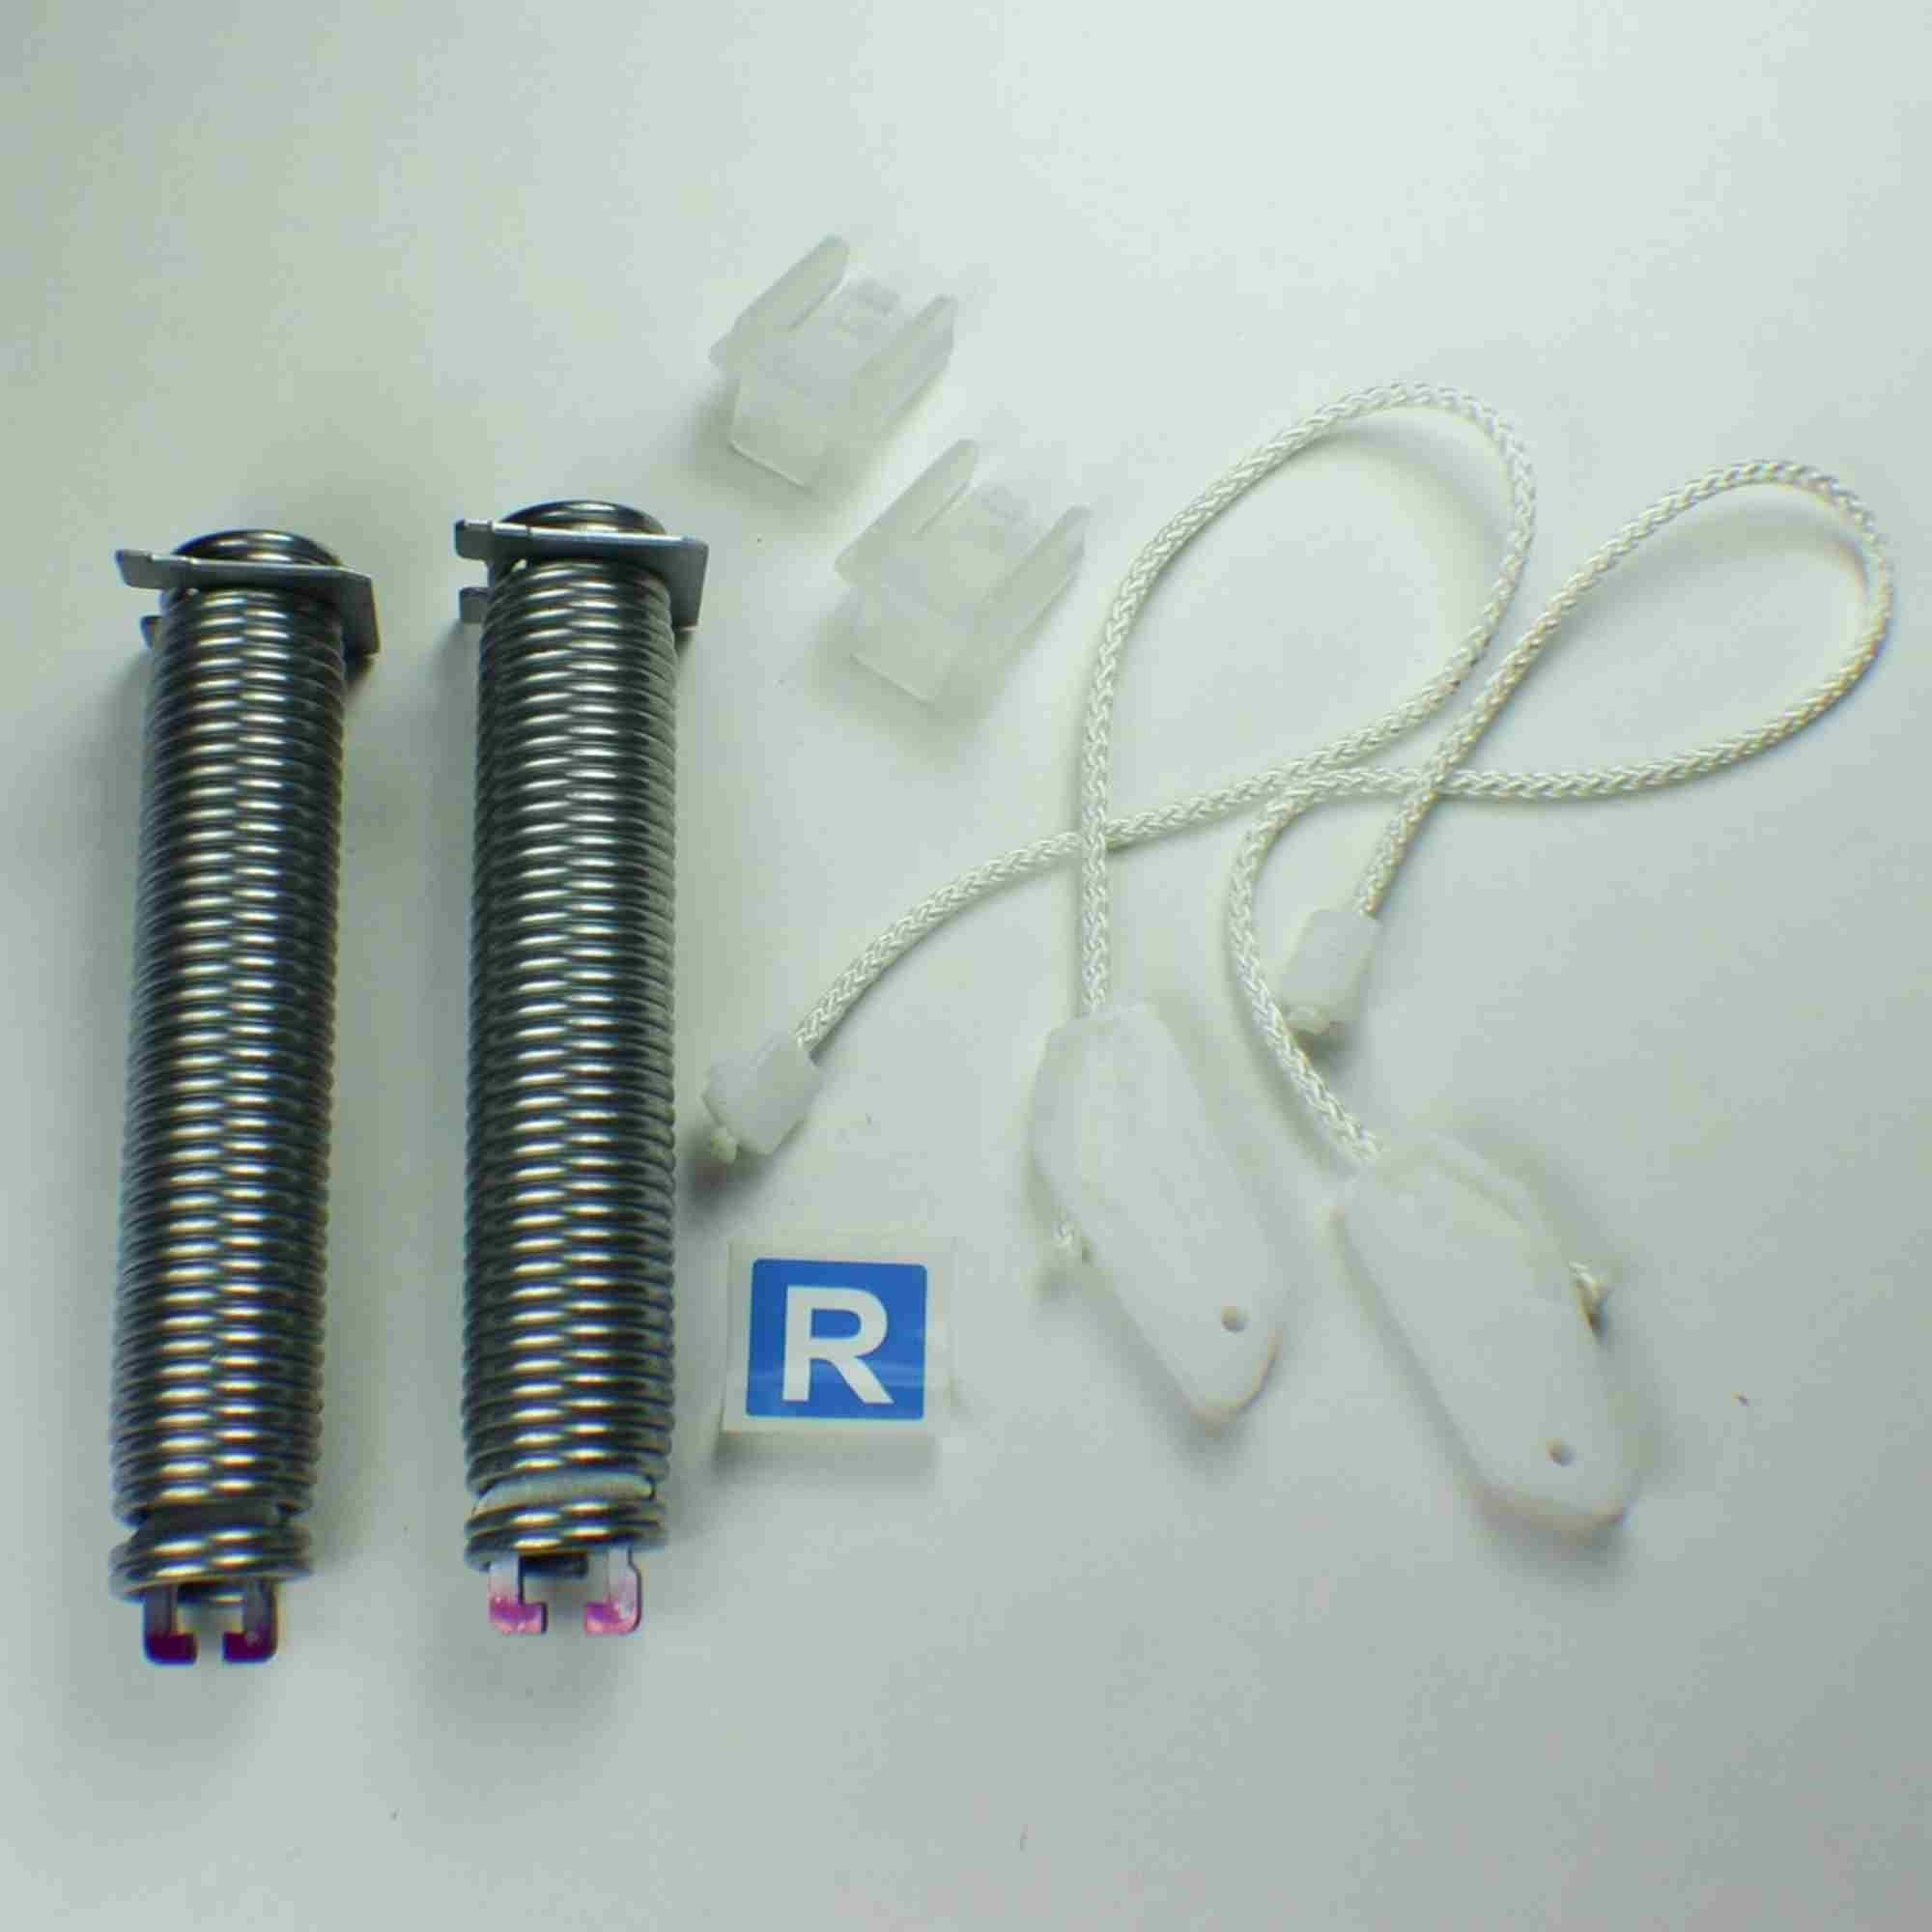 12004116 Dishwasher Door Spring And Pulley Kit Bosch Dishwashers Repair And Maintenance Pulley